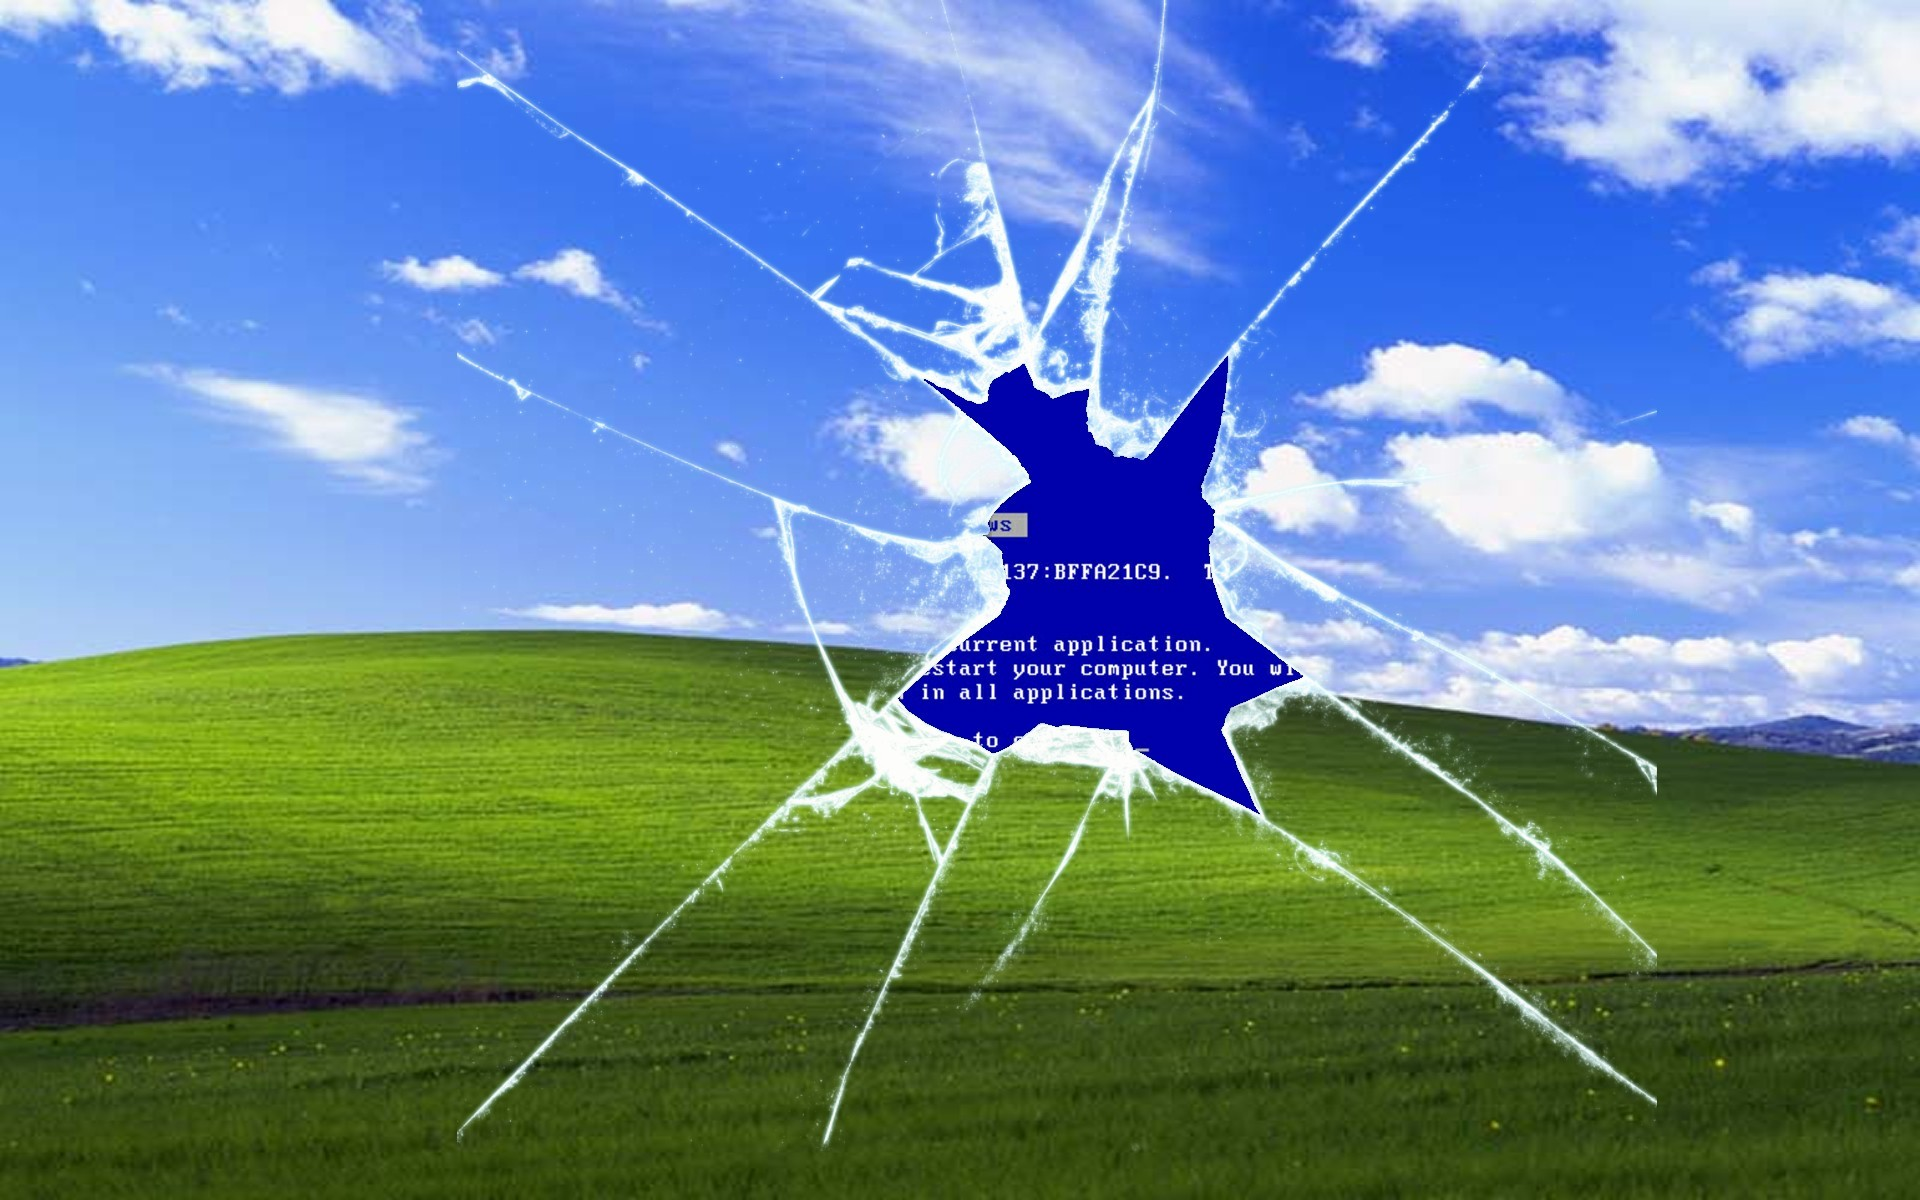 Windows xp home edition wallpaper 48 images - 2 0 wallpaper ...